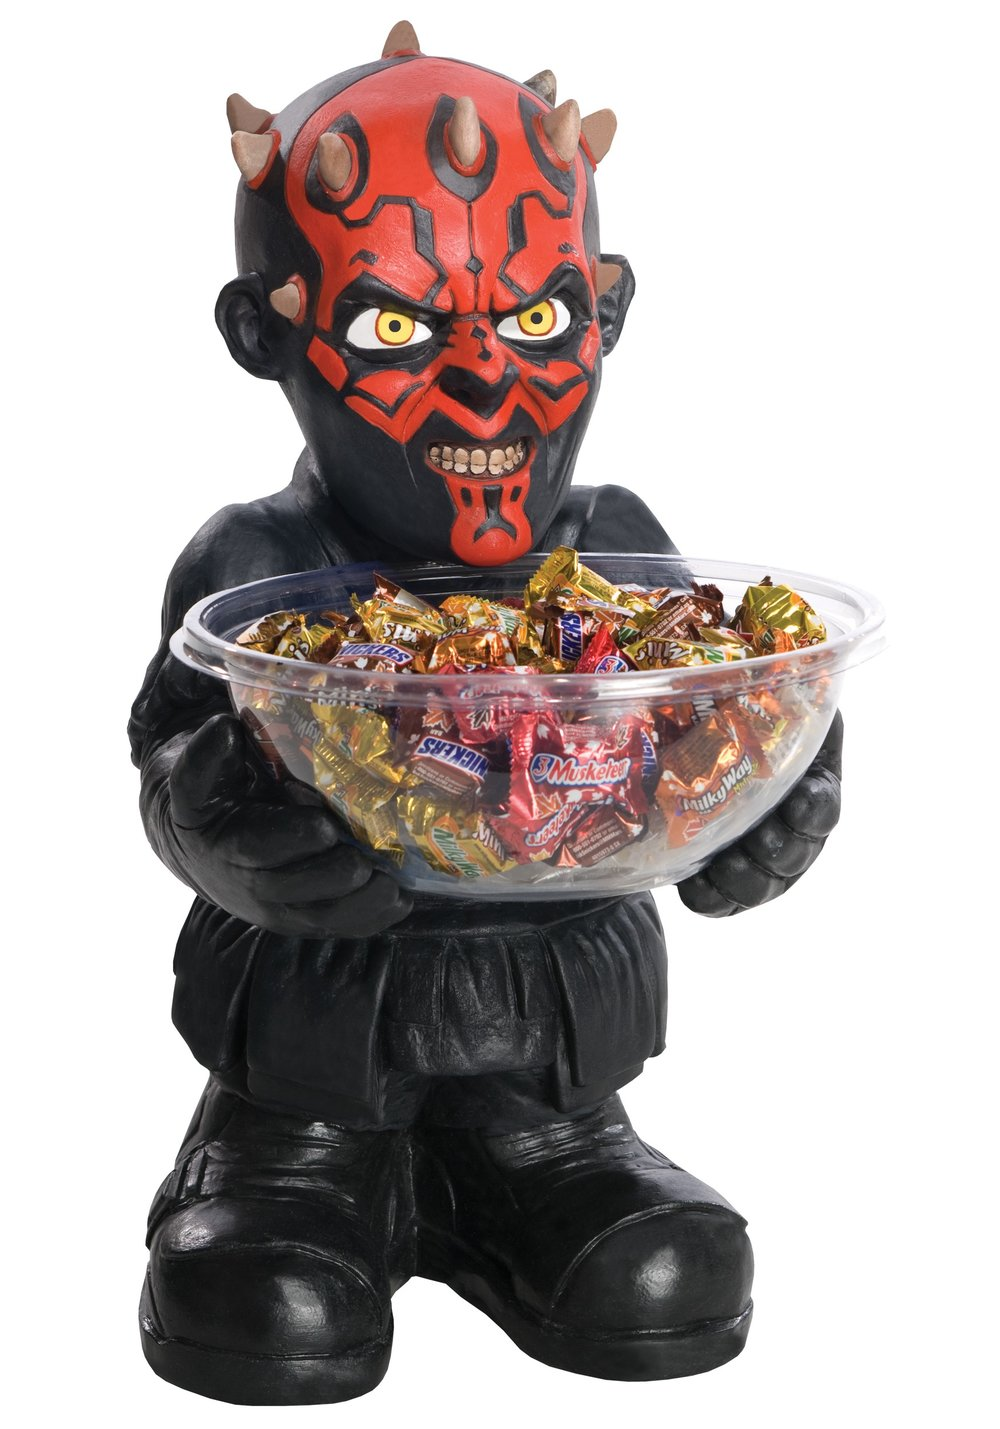 Sith lords are very passionate about their candy!